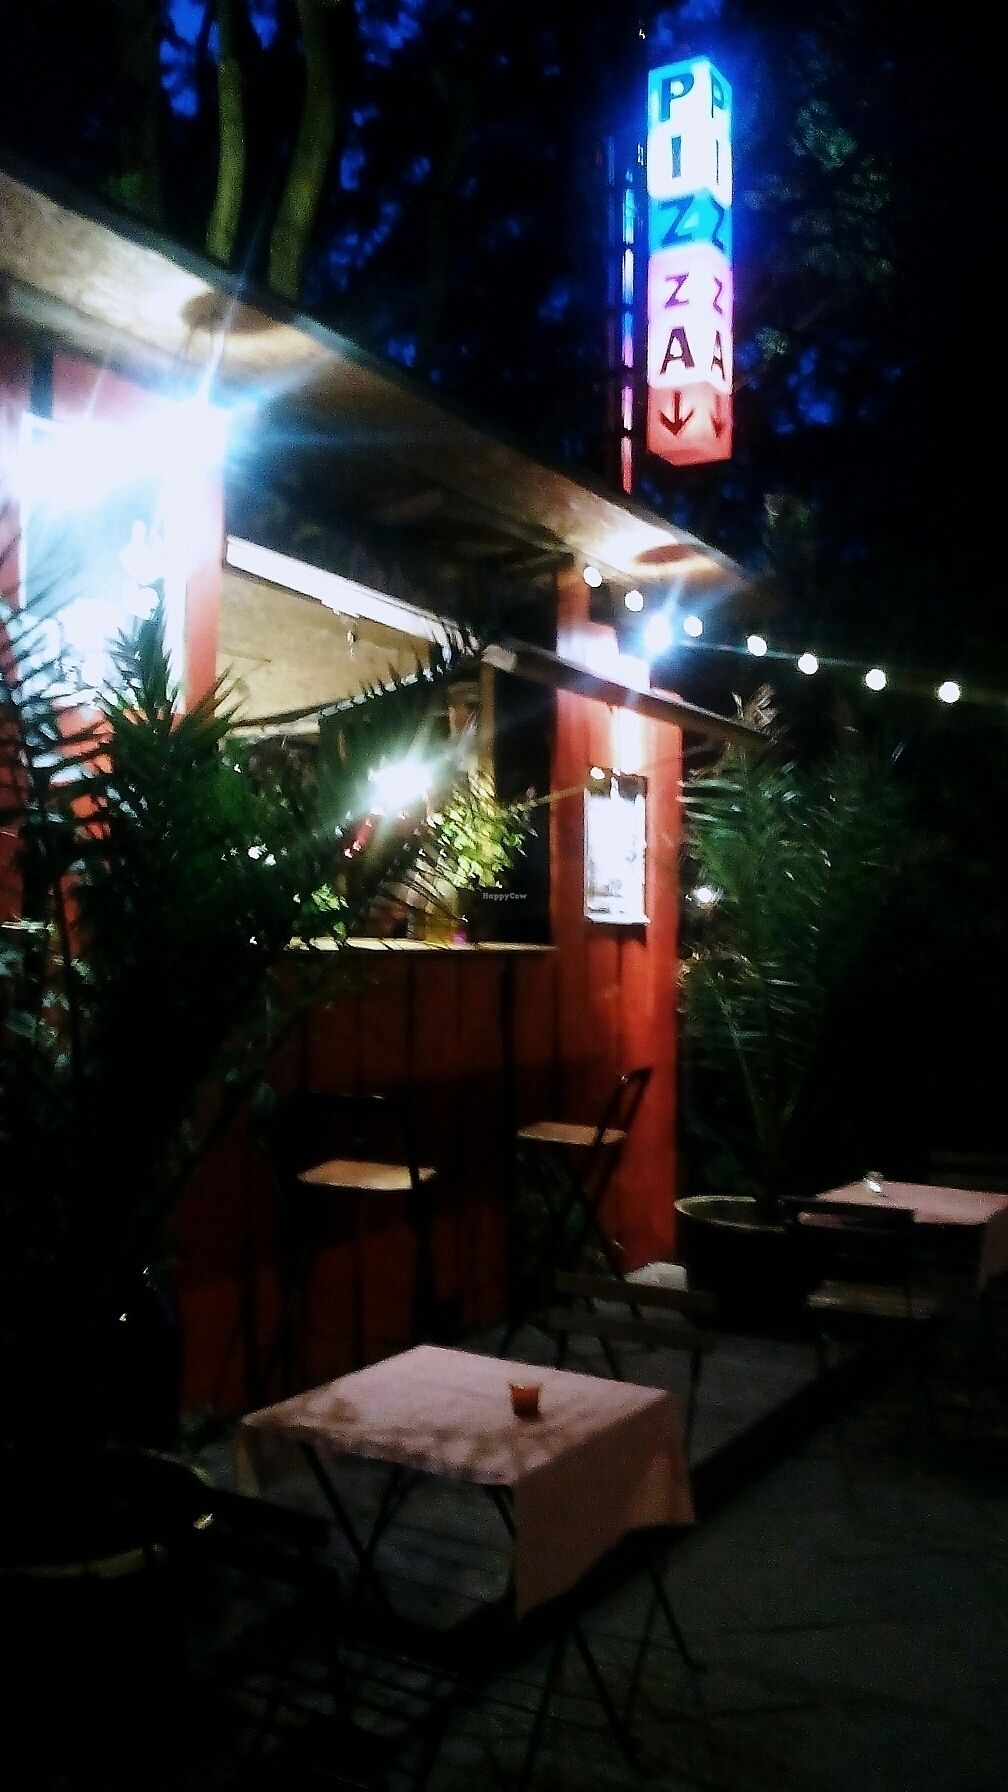 """Photo of Pizzeria Follia  by <a href=""""/members/profile/Renos"""">Renos</a> <br/>outside view <br/> July 28, 2017  - <a href='/contact/abuse/image/97210/285772'>Report</a>"""